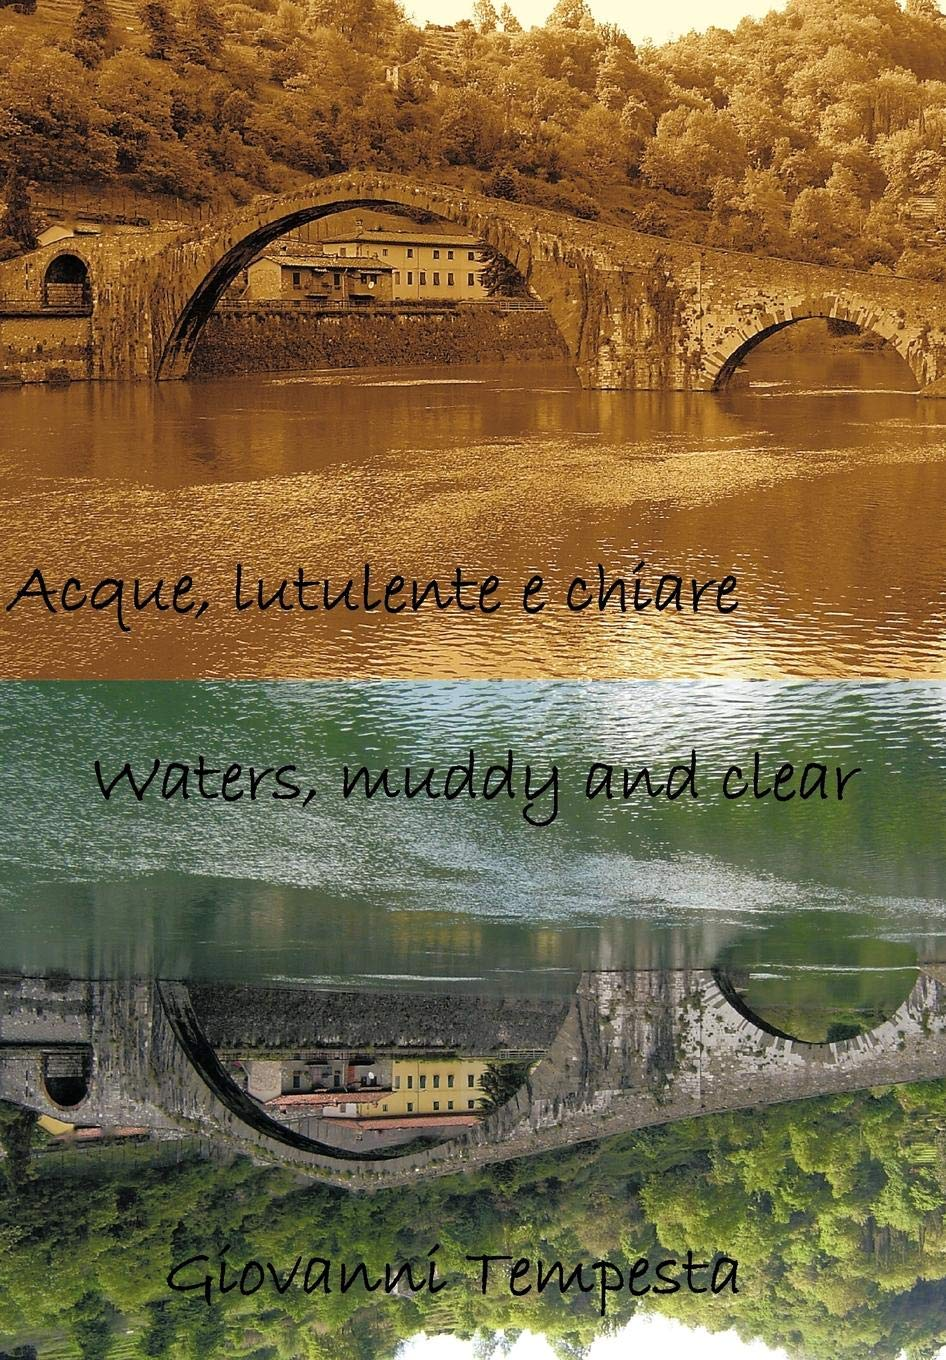 Acque, lutulente e chiare. Waters, muddy and clear